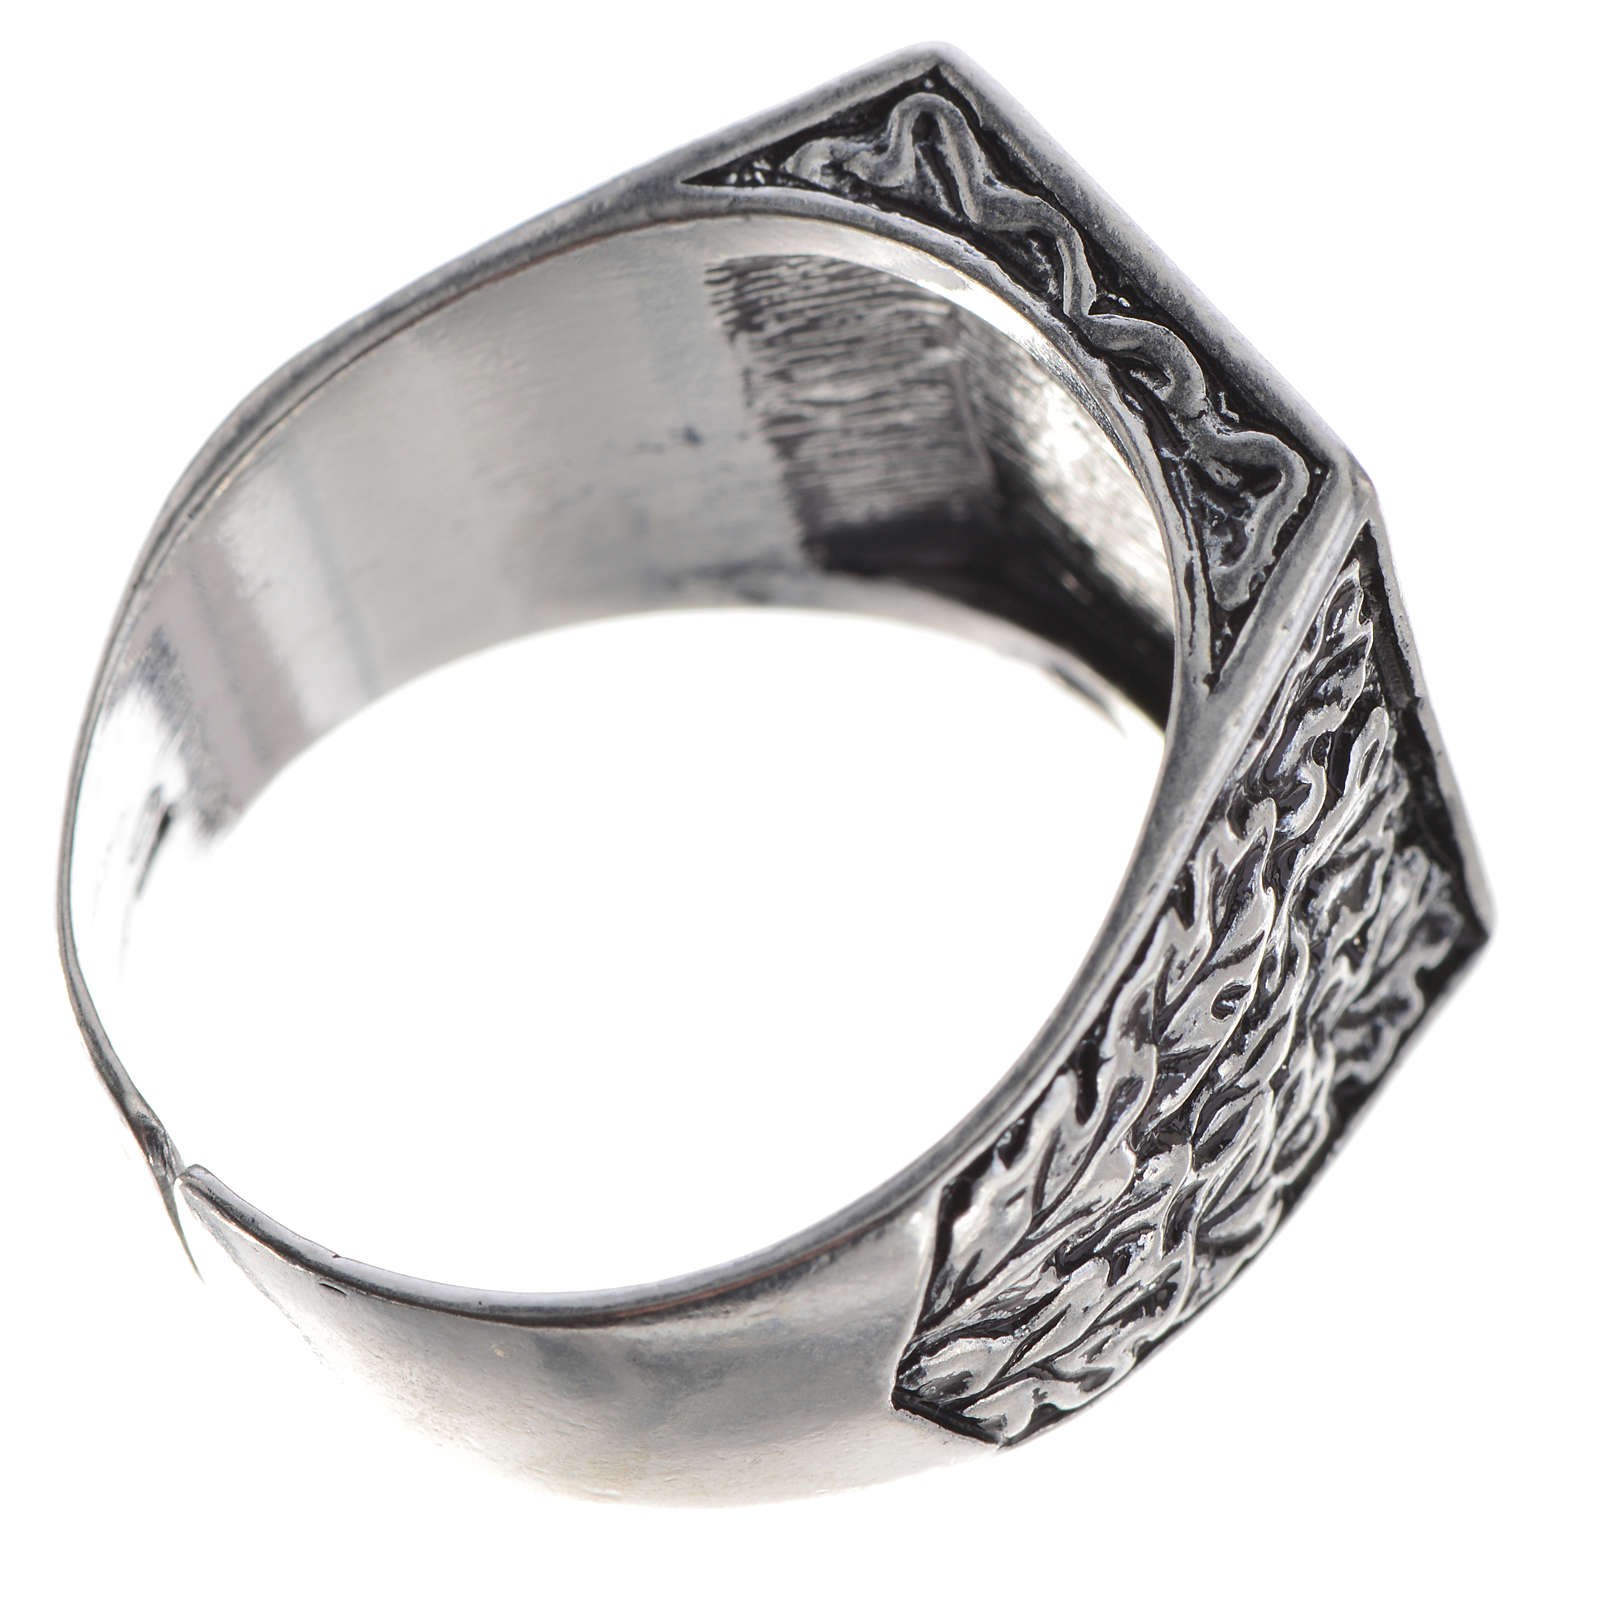 Bishop's ring, burnished 800 silver with Tau cross 3